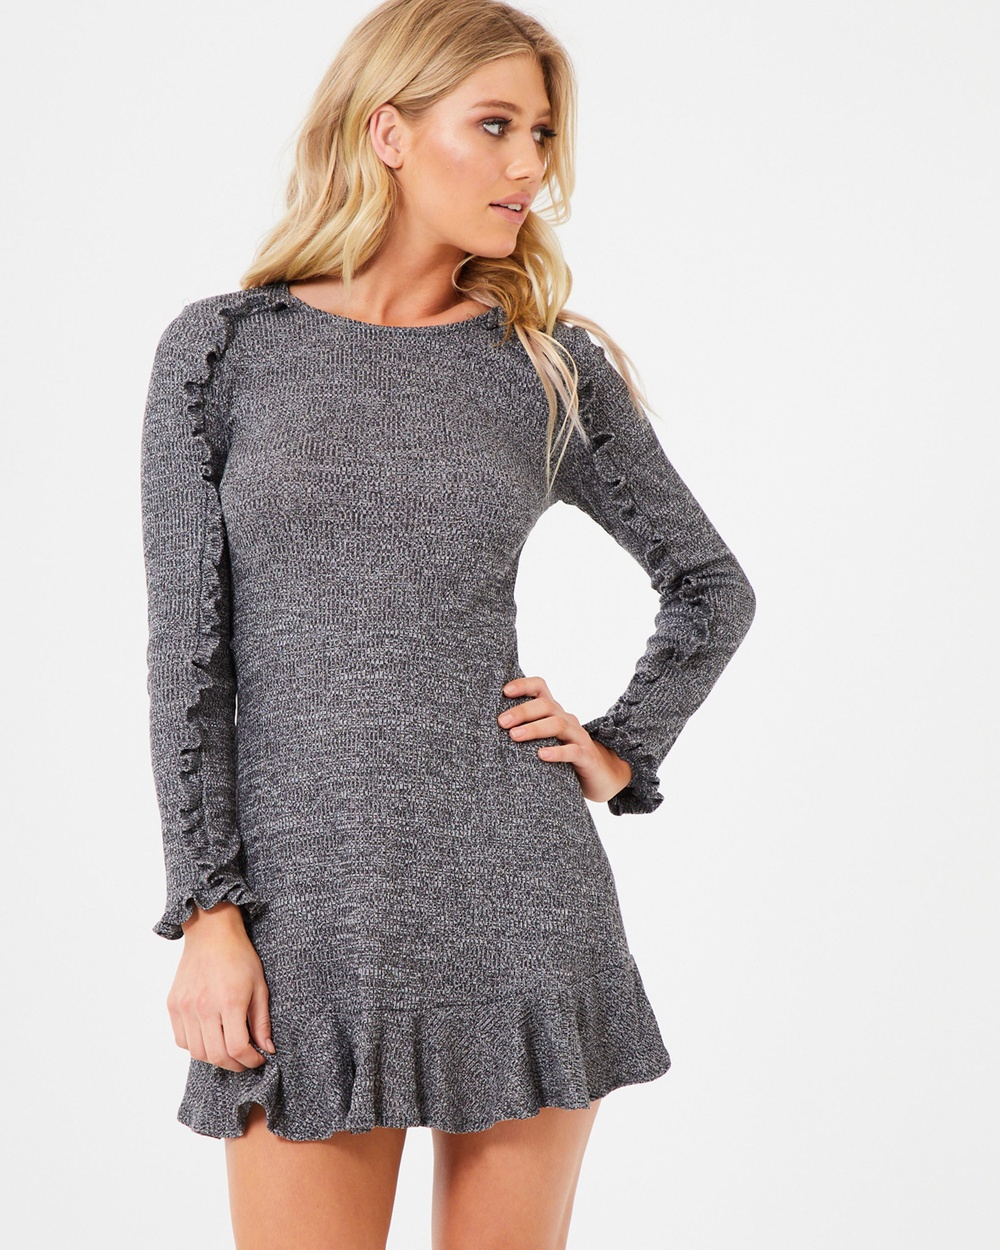 Atmos & Here ICONIC EXCLUSIVE Bailey Knit Ruffle Dress Dresses Charcoal Marle ICONIC EXCLUSIVE Bailey Knit Ruffle Dress